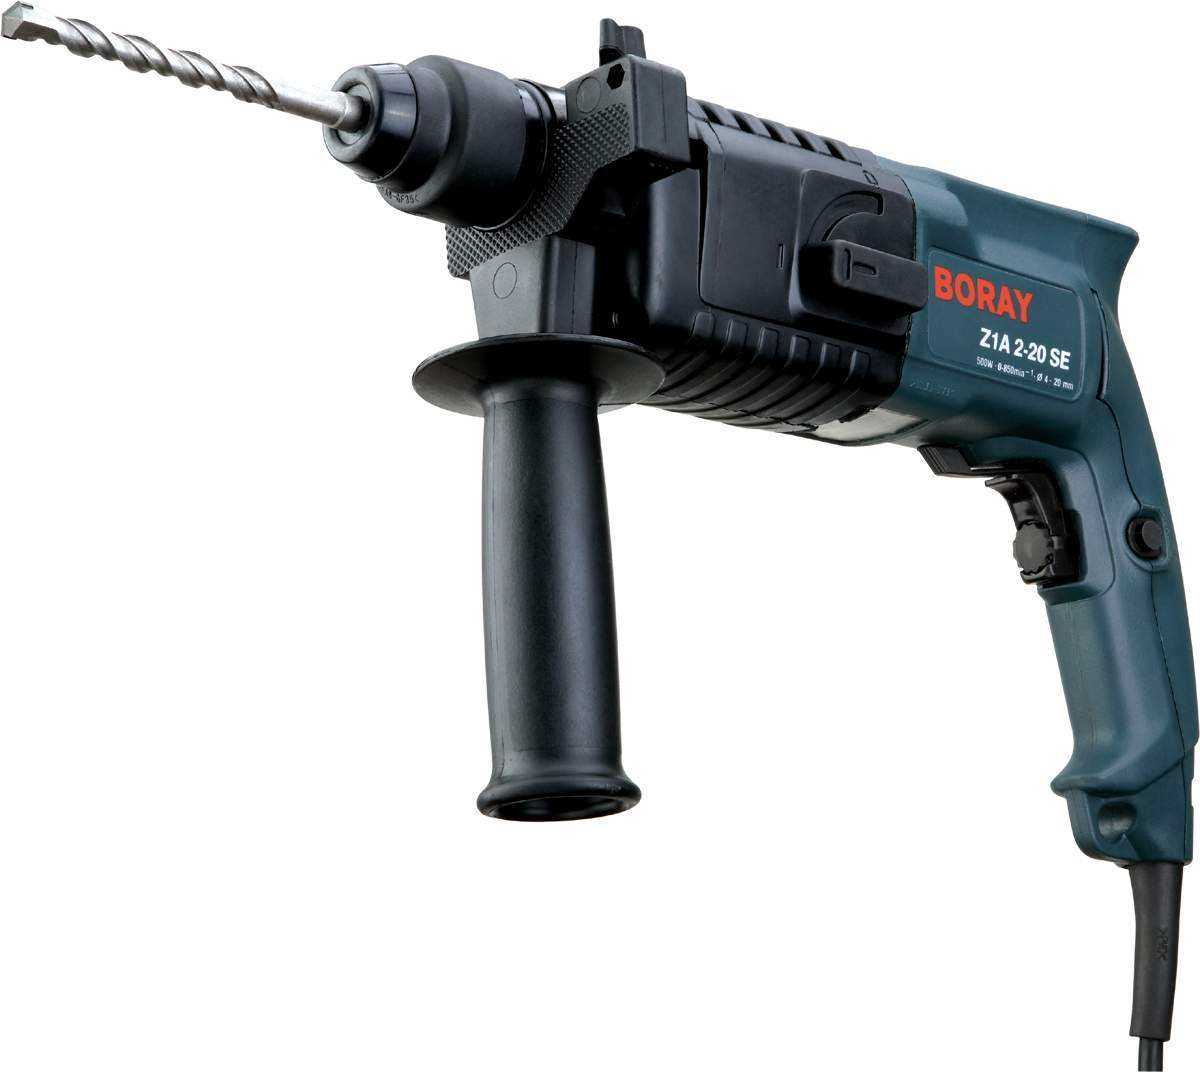 Multuifunction Electric Rotary Hammer, Rotary Hammer Drill